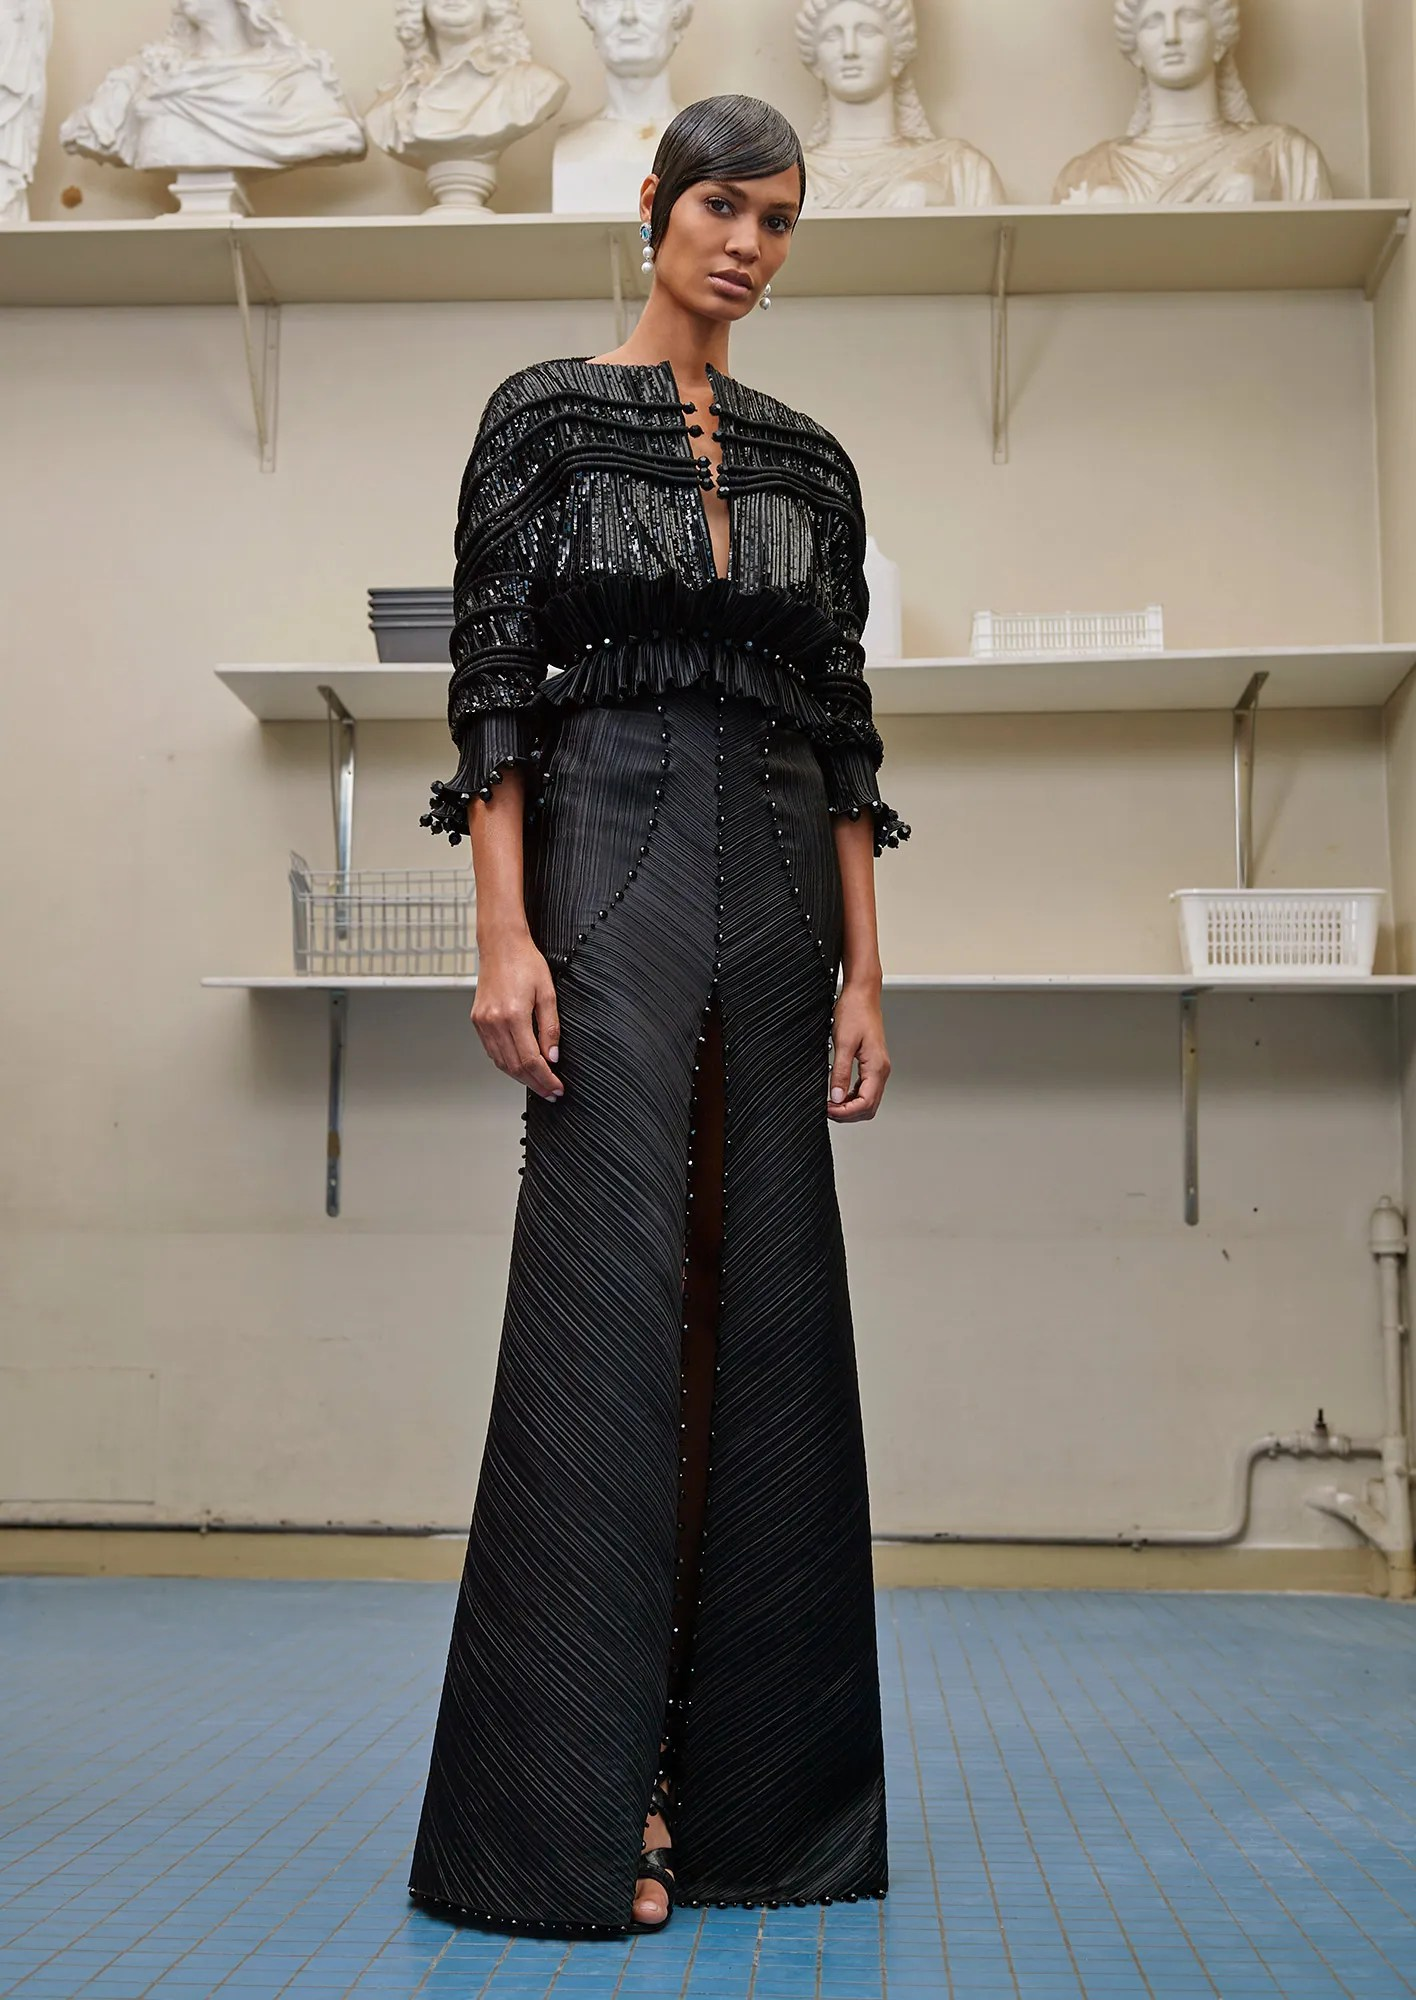 Givenchy Couture FW16 Fall/Winter 2016 womenswear